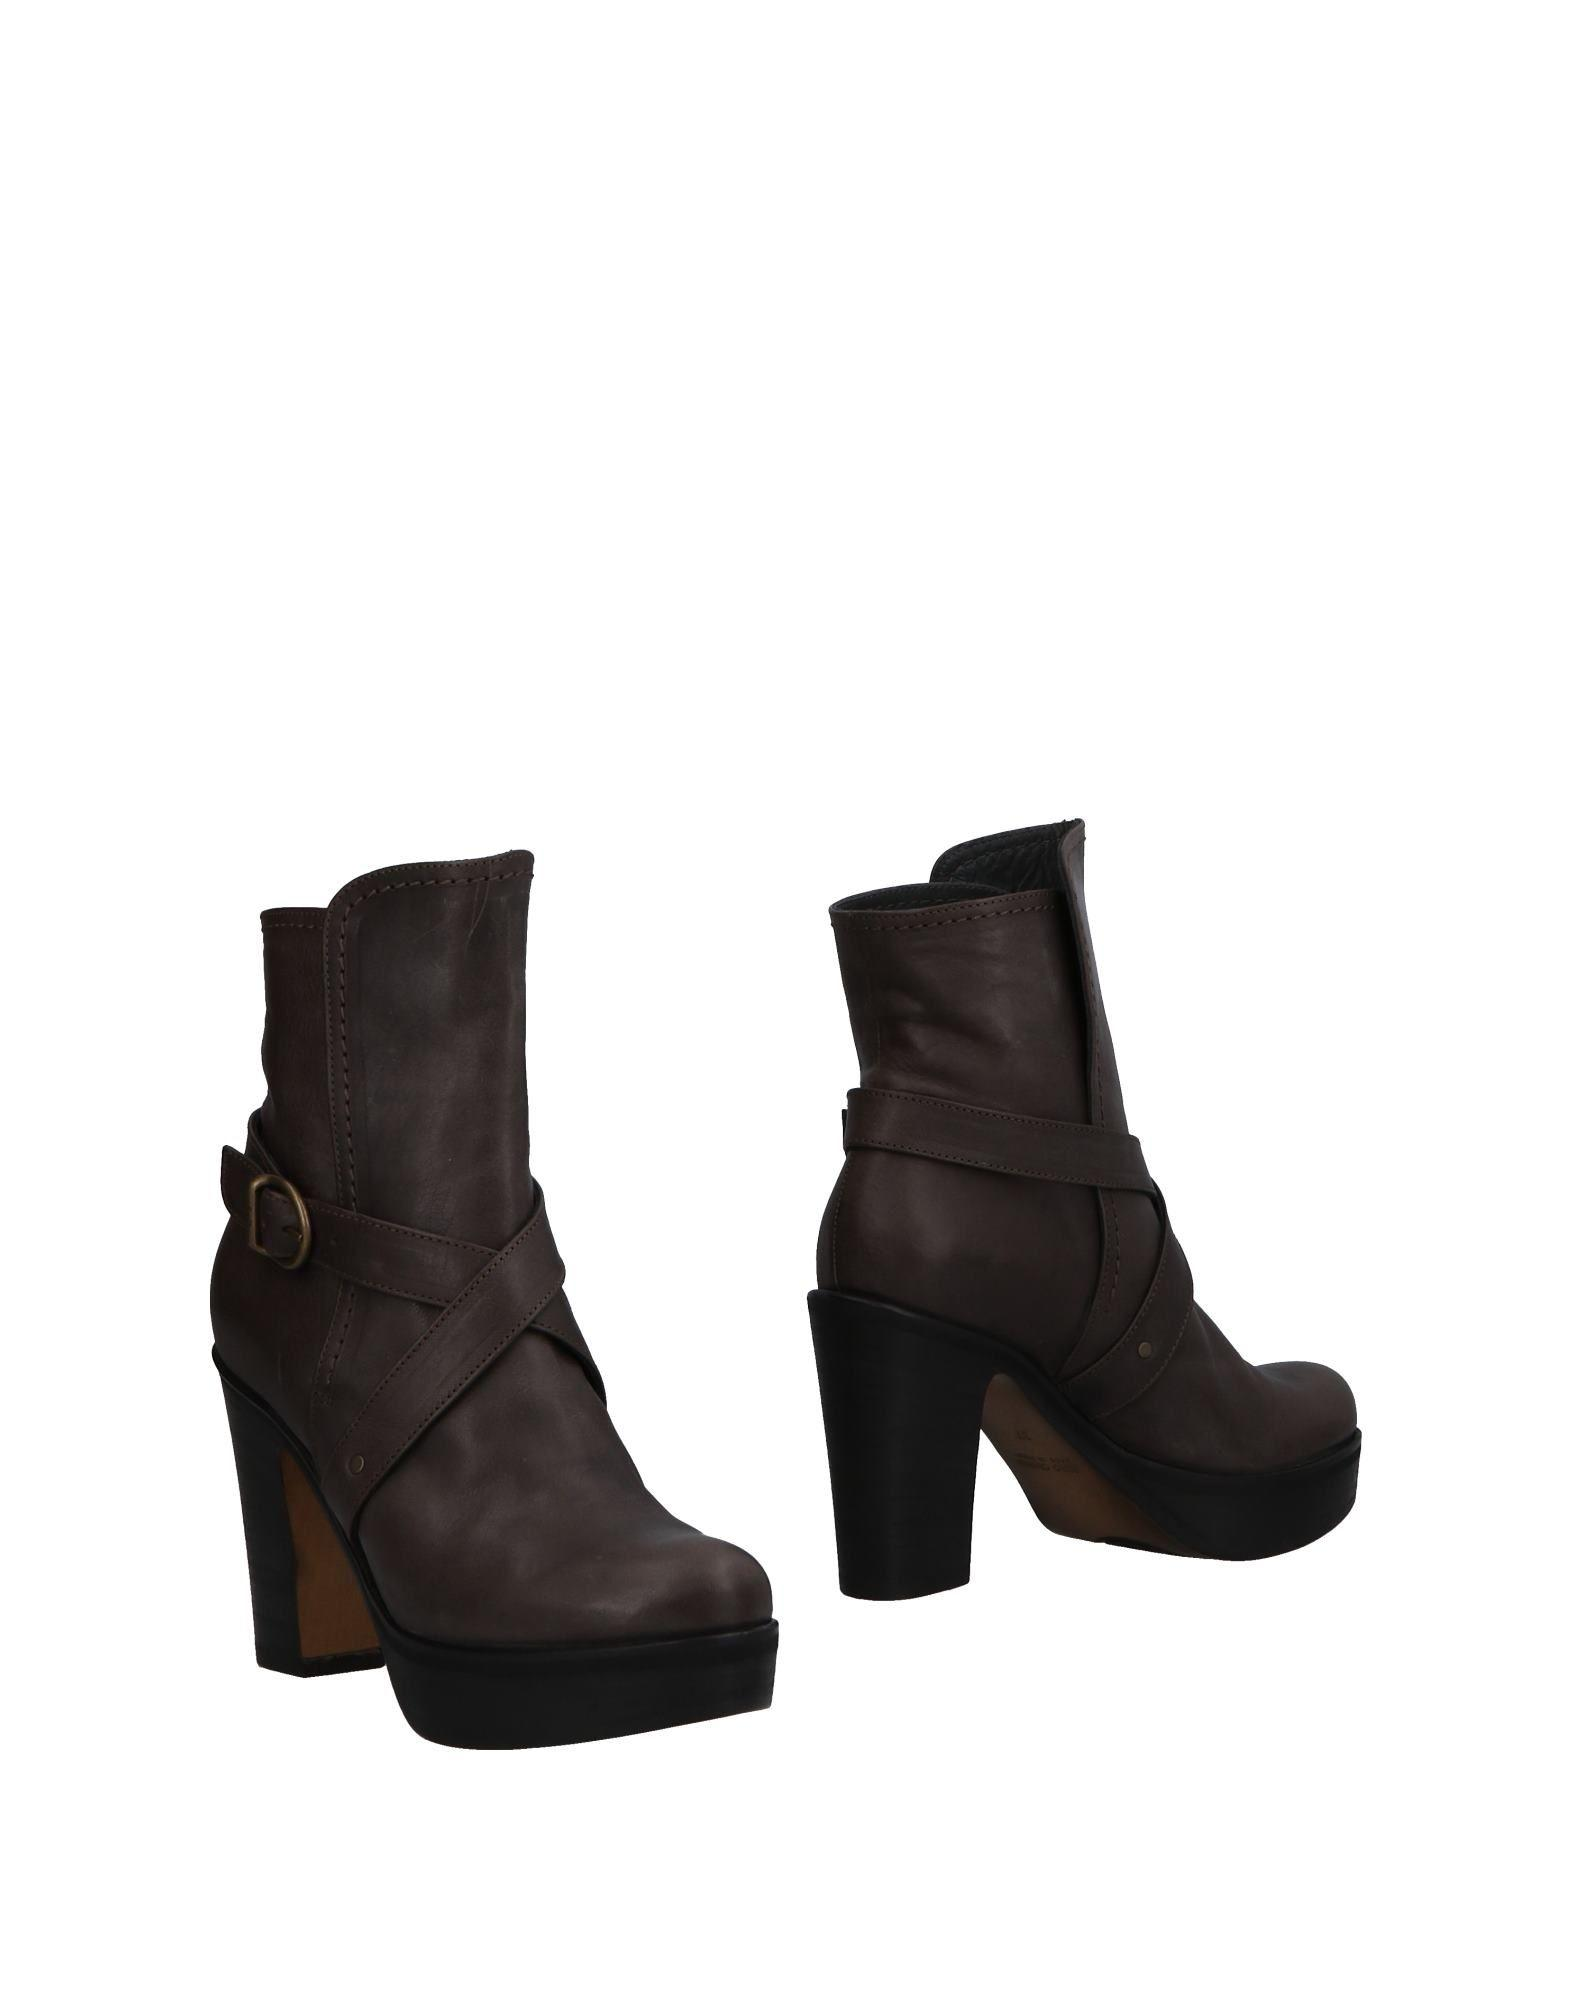 Fiorentini + Baker Ankle Boot In Lead